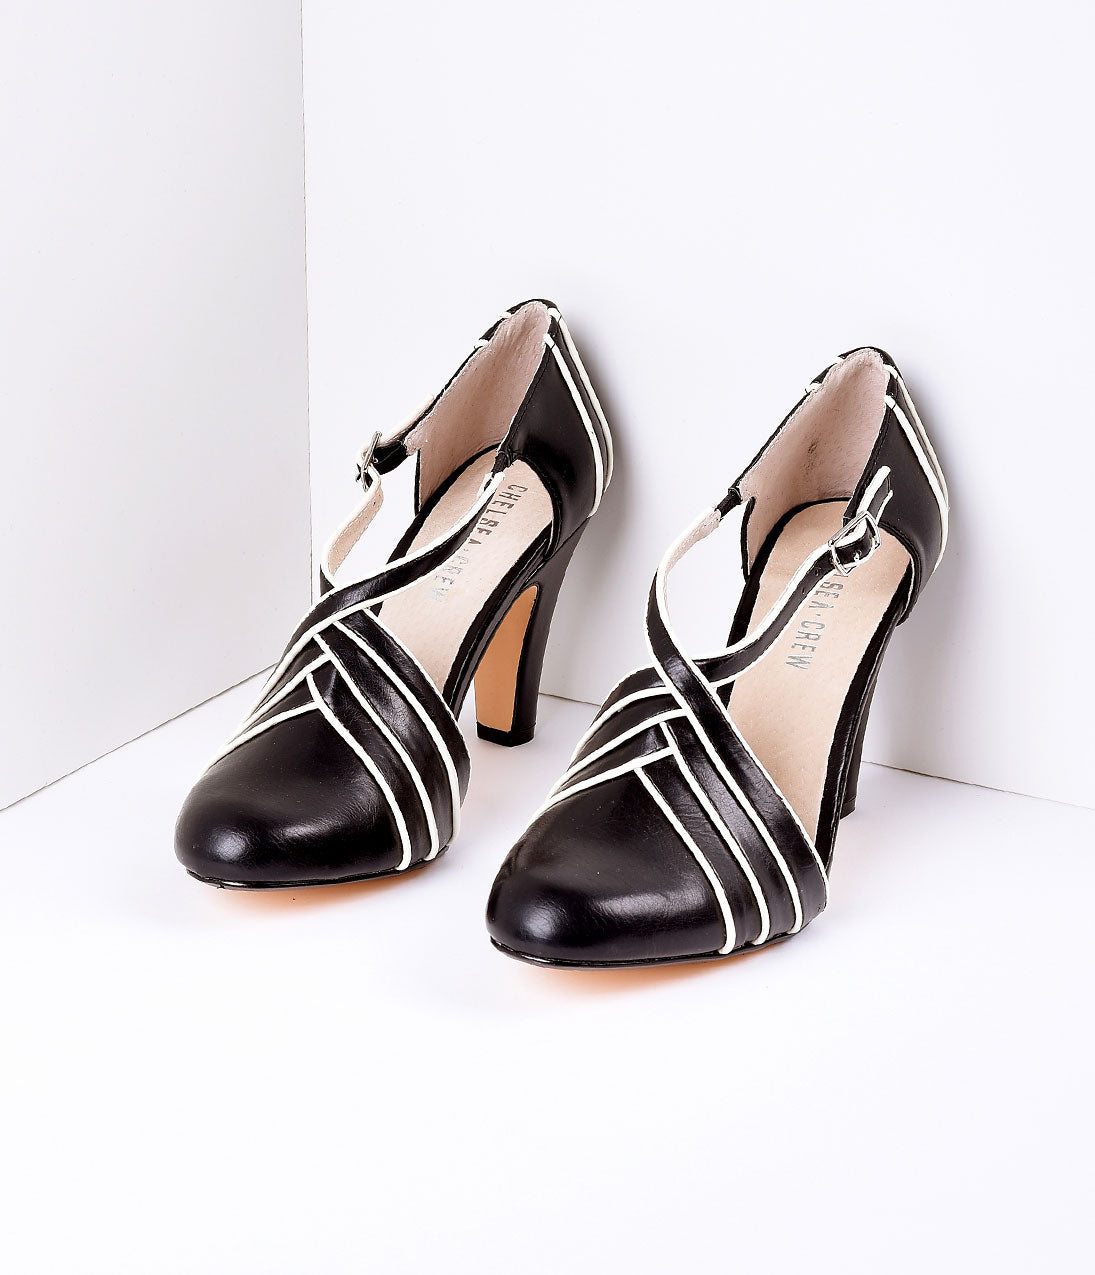 1950s Style Shoes | Heels, Flats, Saddle Shoes Vintage Style Black  Ivory Wrapover Leatherette DOrsay Heels $64.00 AT vintagedancer.com